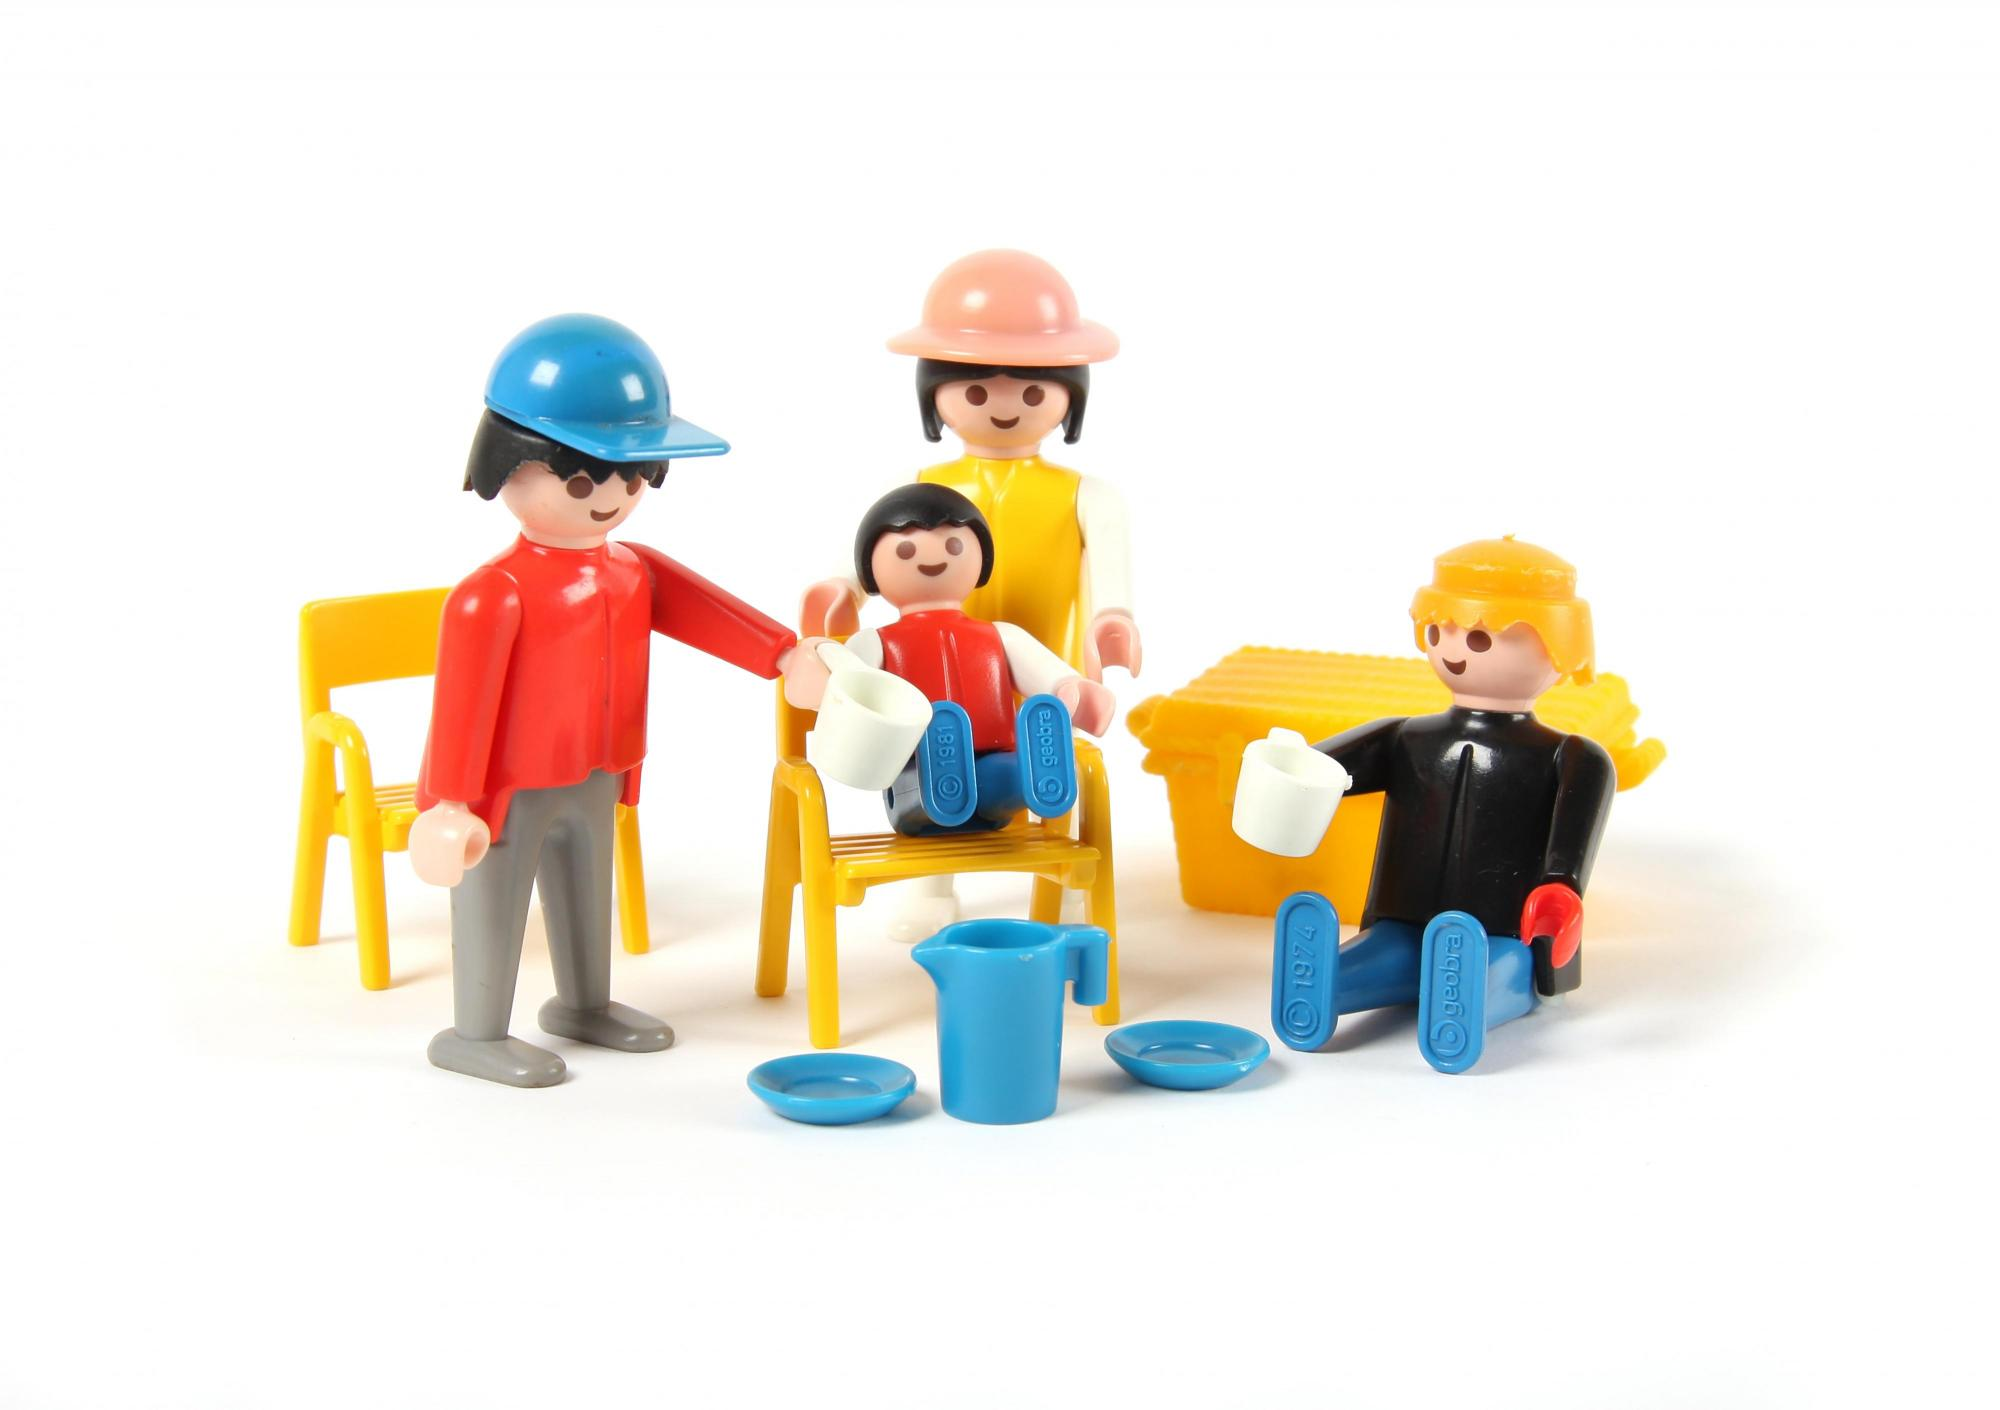 Playmobil picnic set